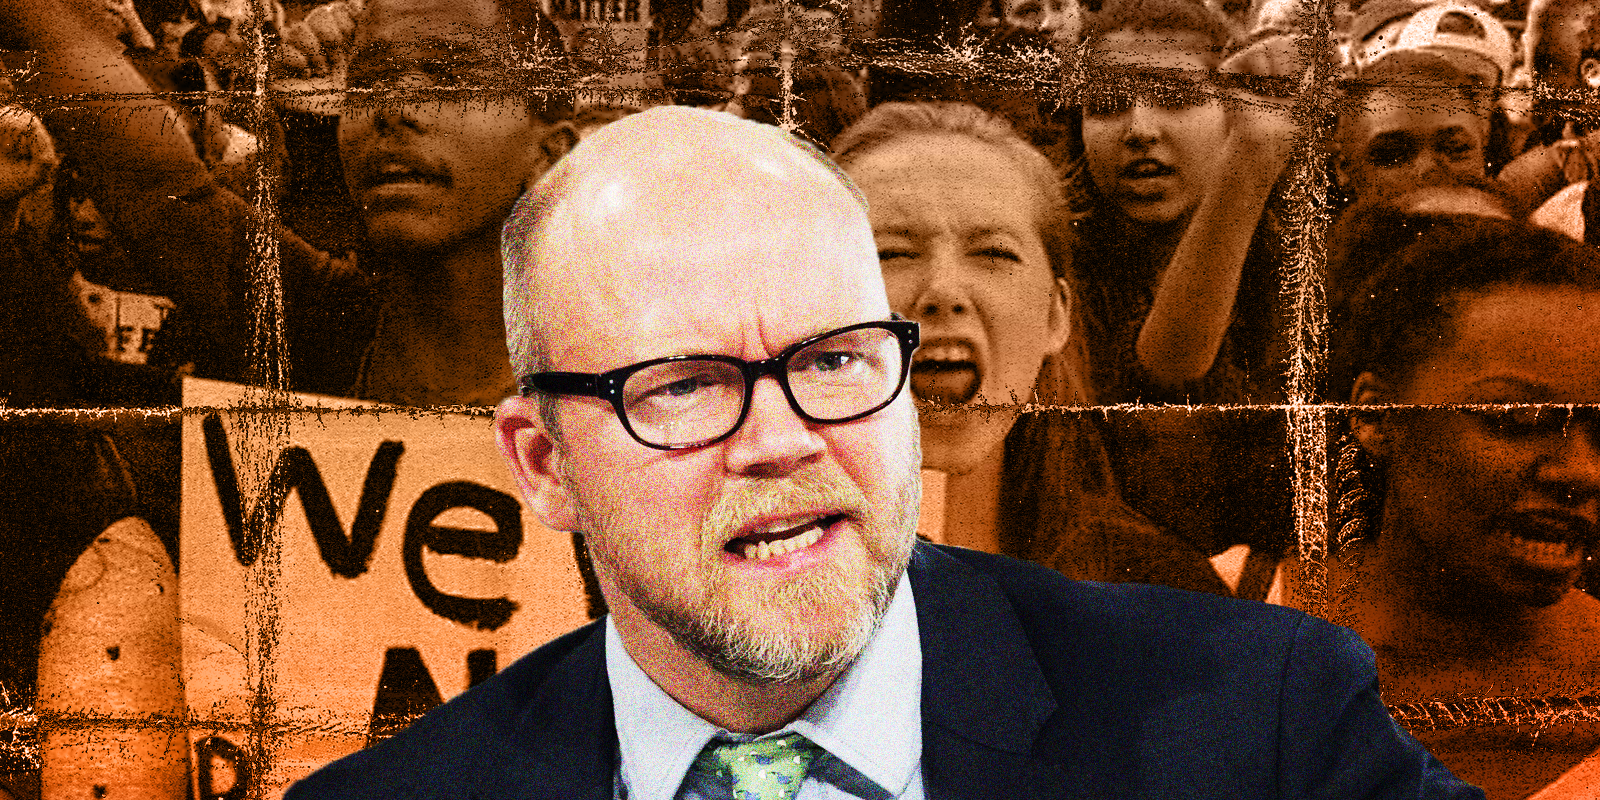 Toby Young's revolt against cancel culture: meet the Free Speech Union